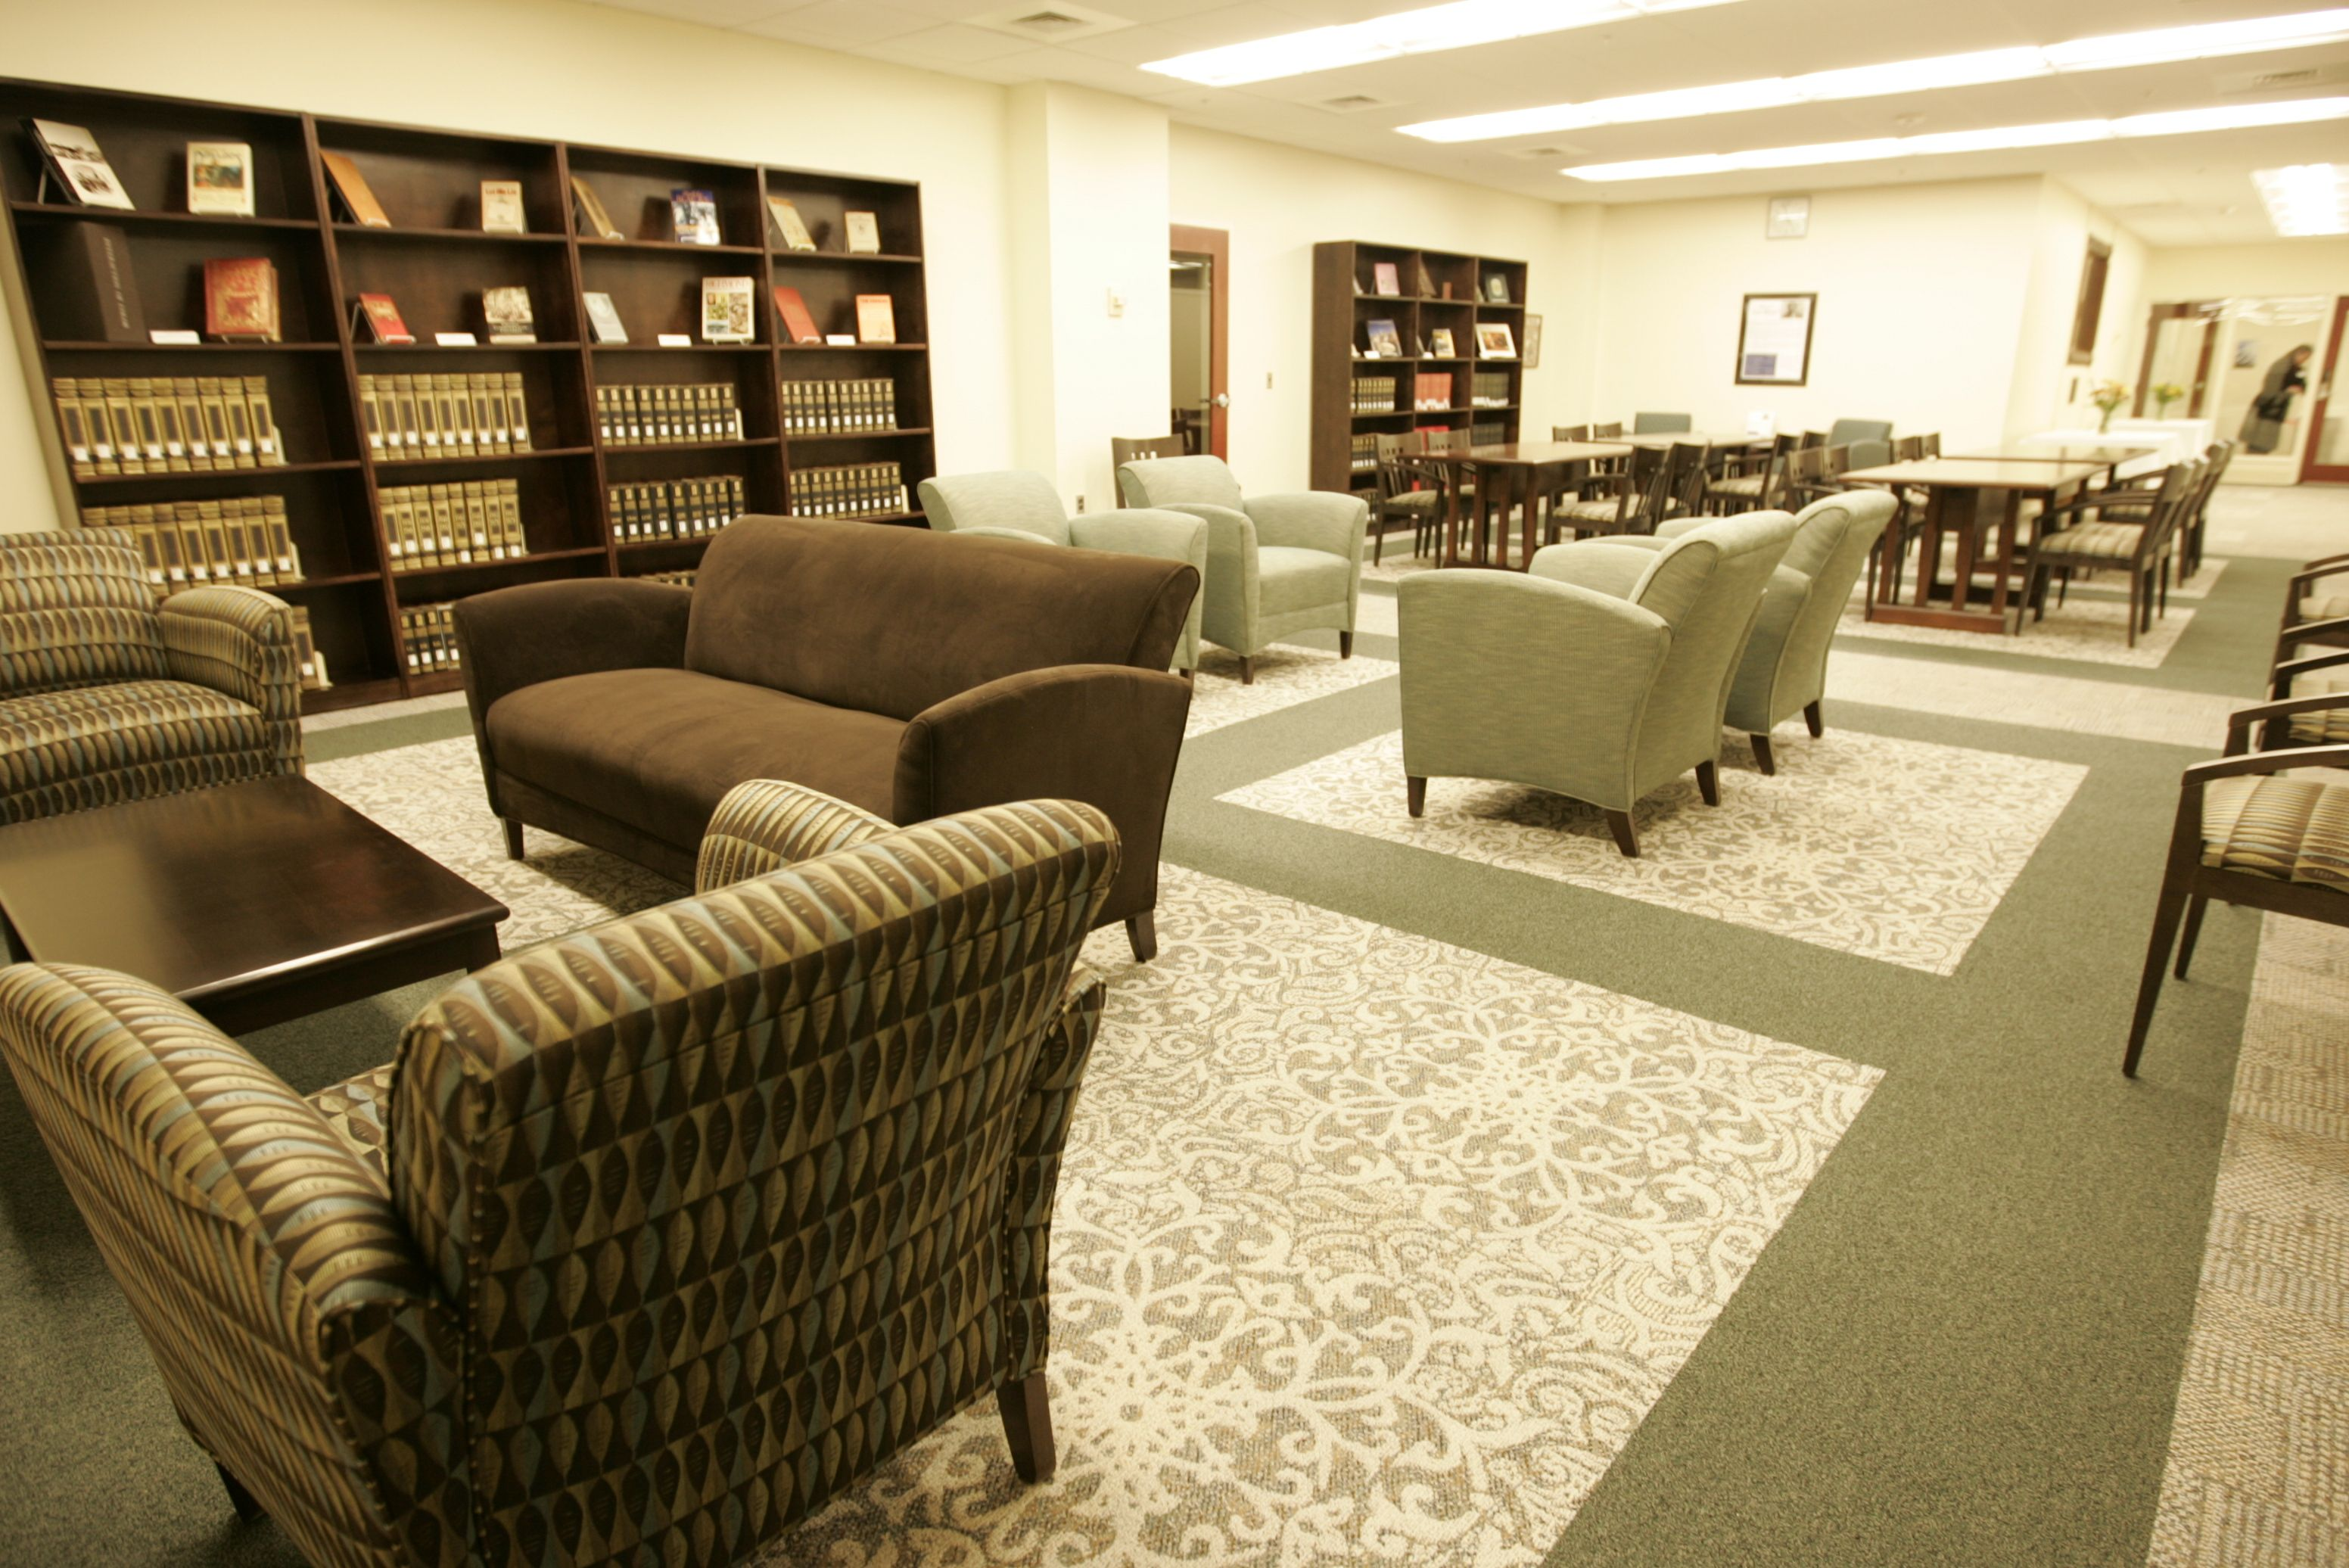 Mapp Graduate Reading Room image